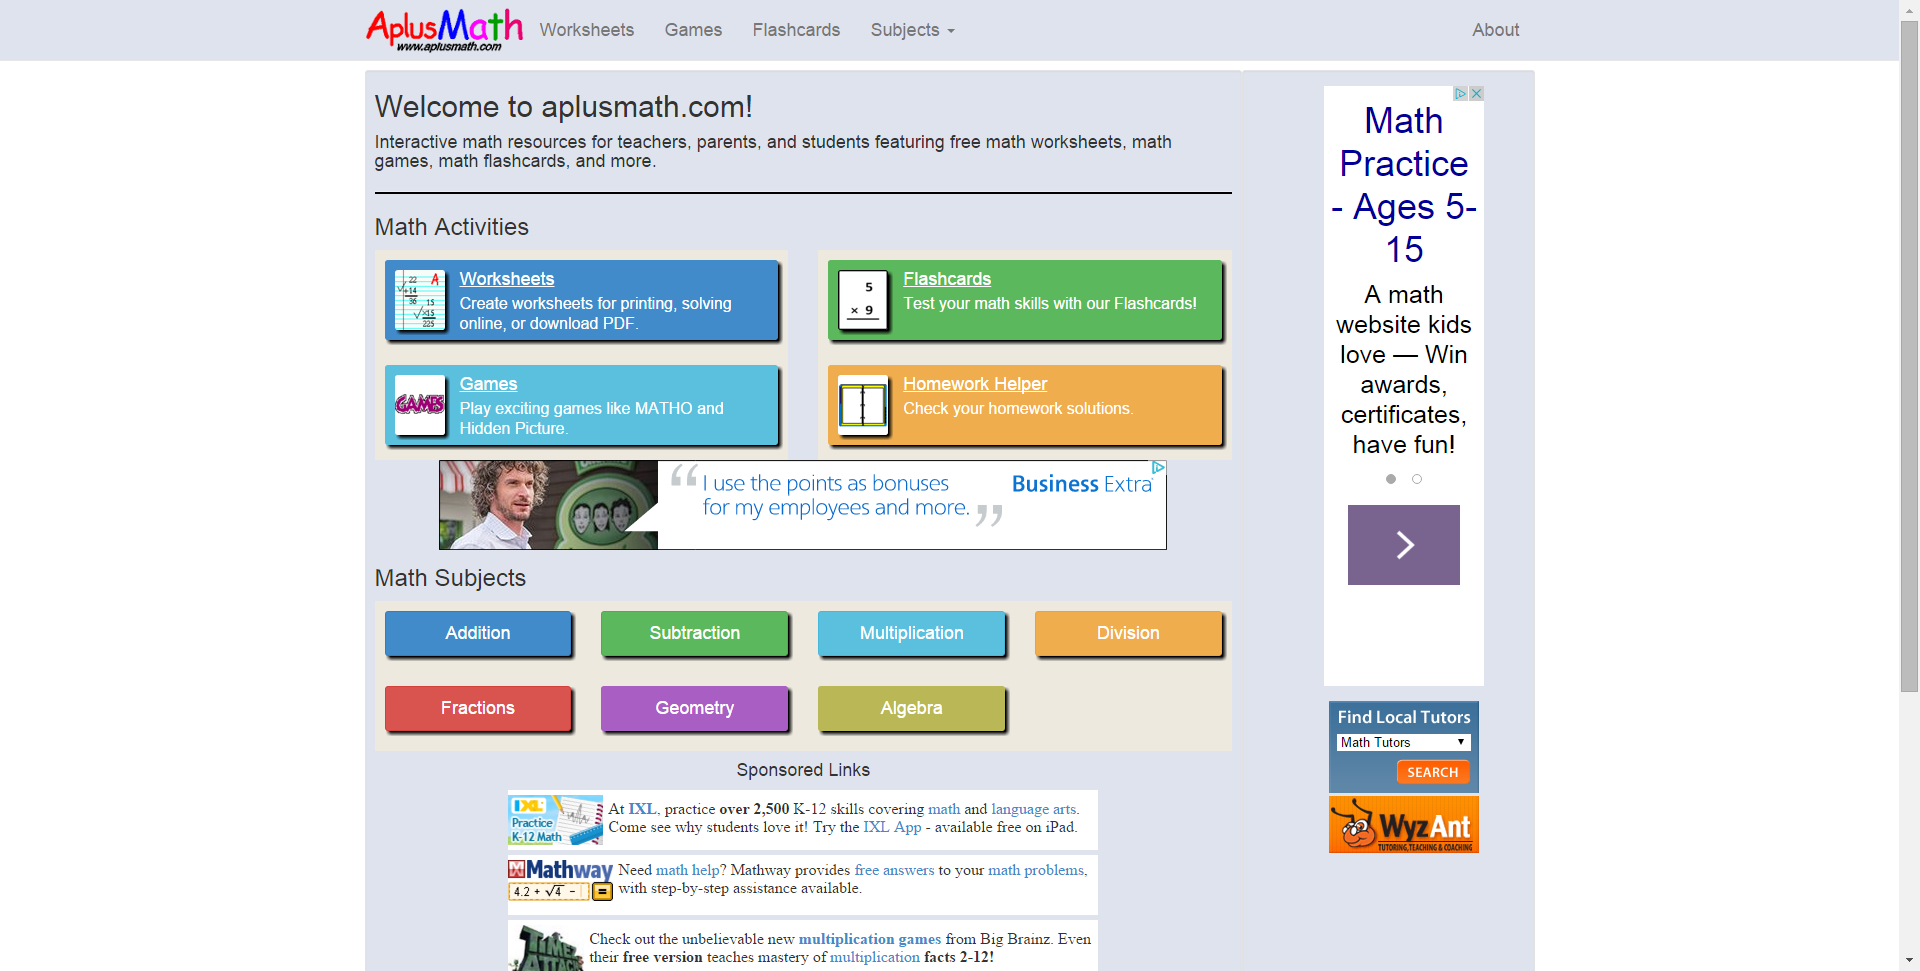 Aplusmath.com - Free Math Worksheets, Math Games, Math Flashcards ...